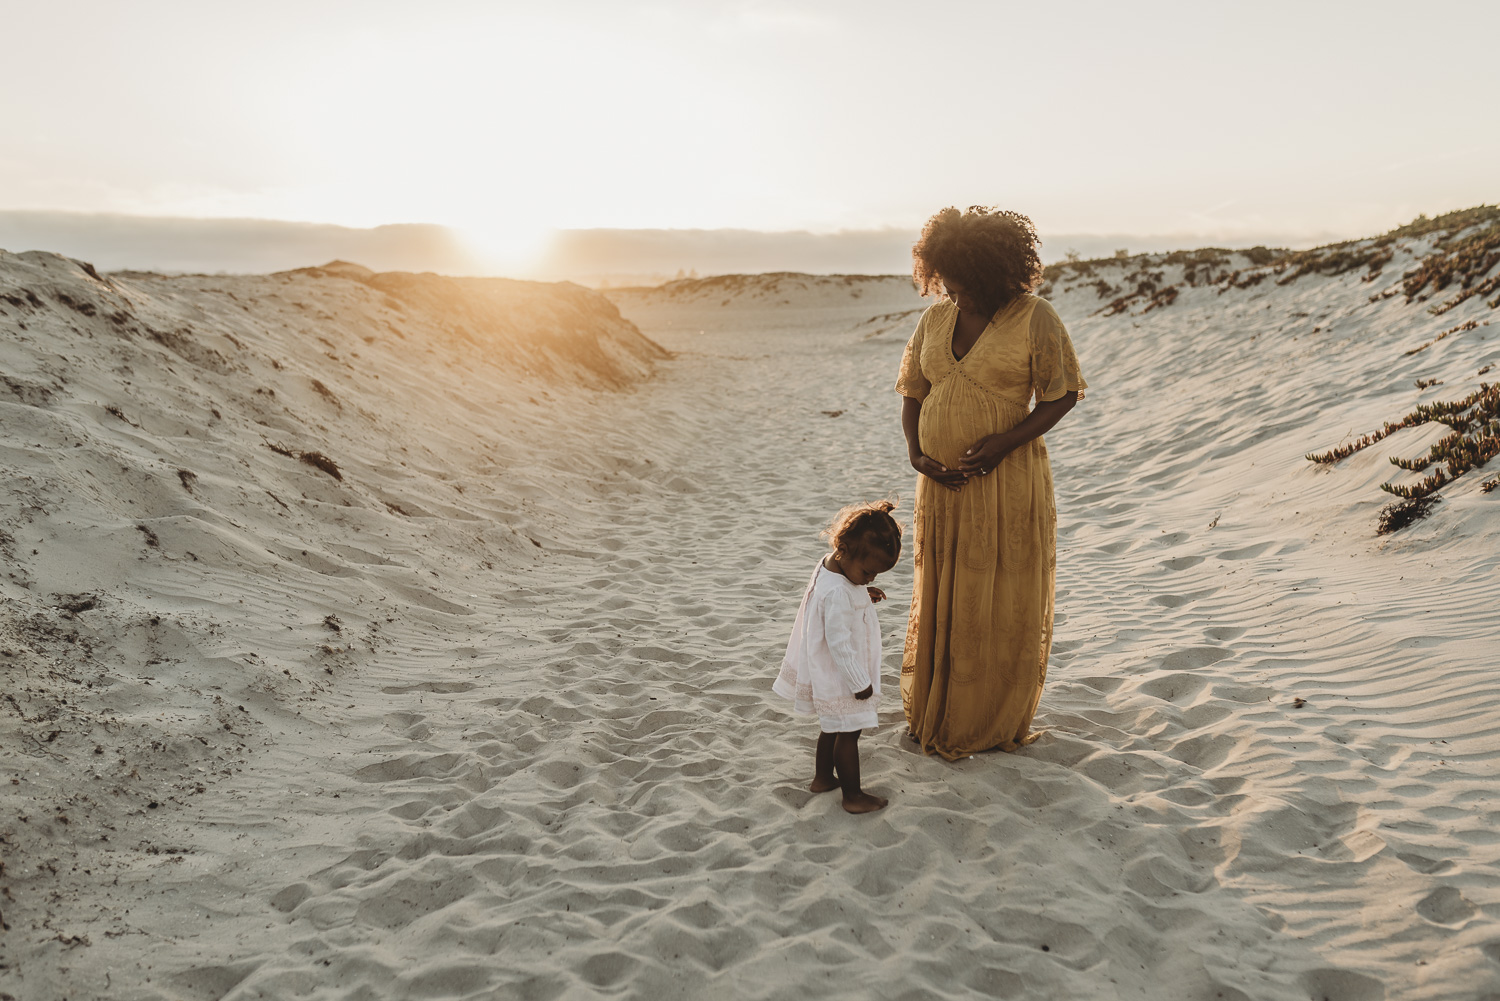 sandiego_family_photography_beach_lifestyle_newborn_maternity-88.jpg